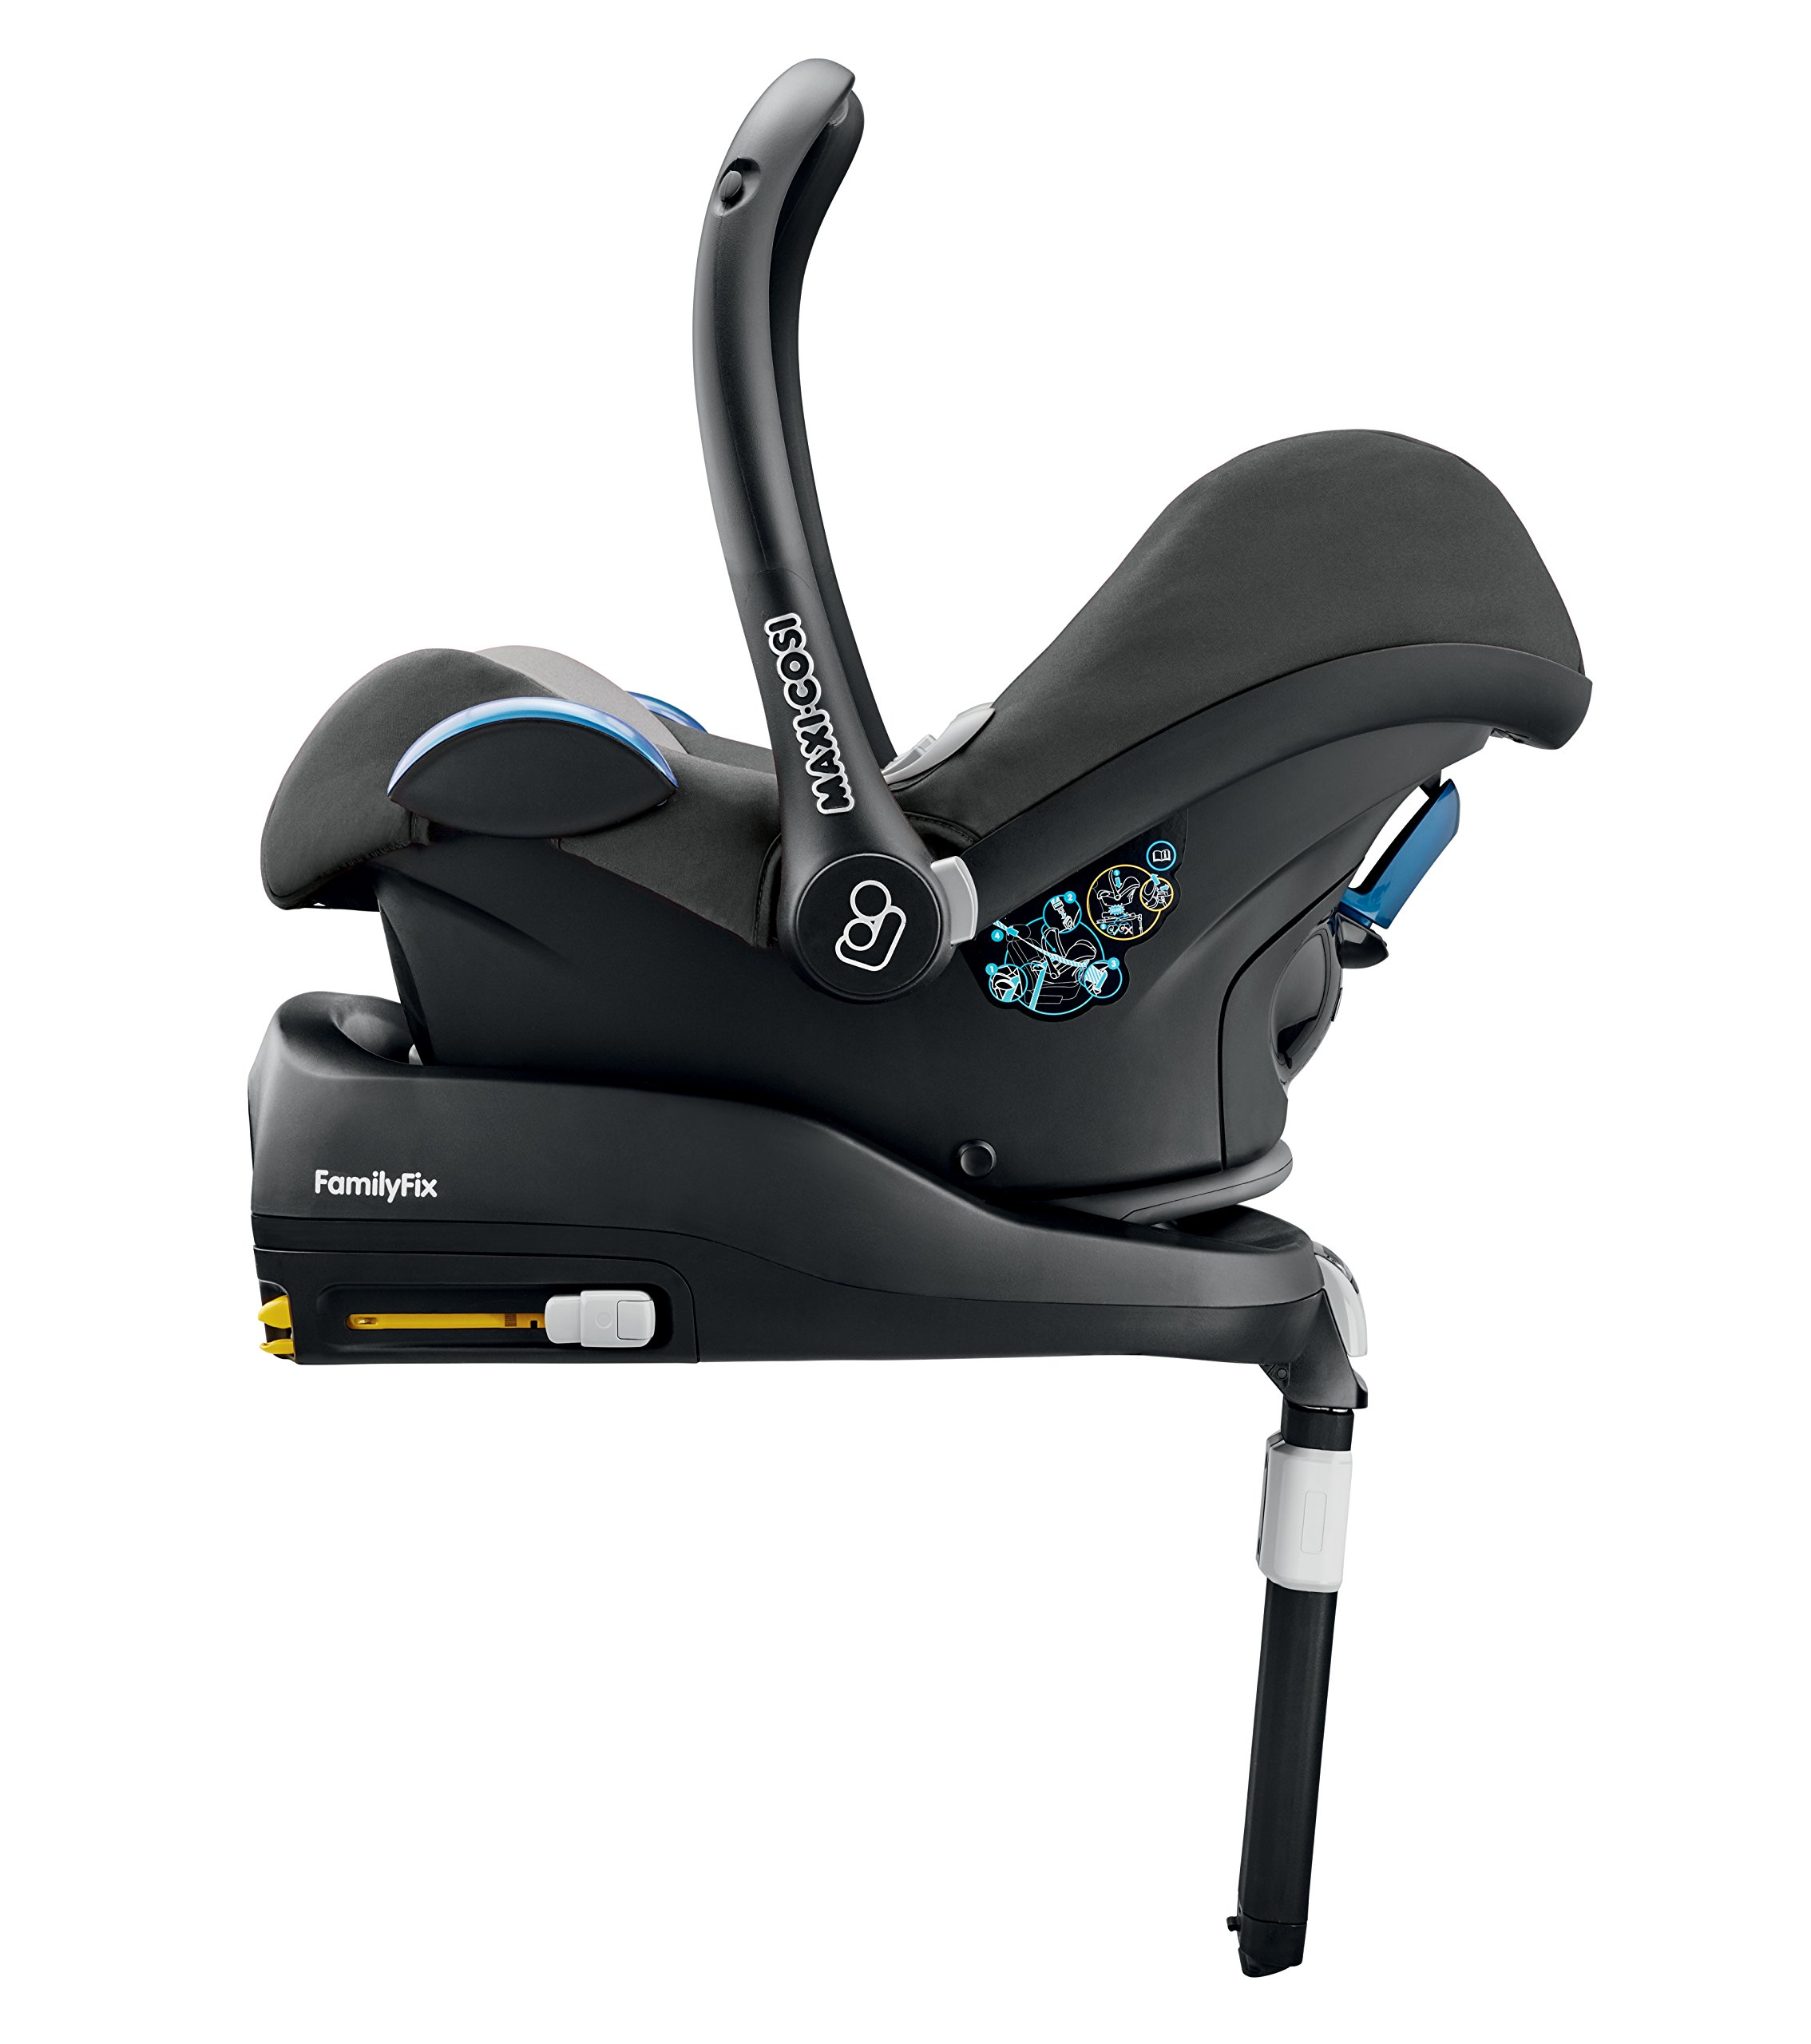 Maxi-Cosi CabrioFix Baby Car Seat Group 0+, ISOFIX, 0-12 Months, 0-13 kg, Concrete Grey Maxi-Cosi Suitable from birth to 13 kg (approximately 12 months) Compatible with Maxi-Cosi and Quinny pushchairs to form a travel system Easy installation in combination with Maxi-Cosi FamilyFix Base, EasyFix Base or a three-point seat belt 6